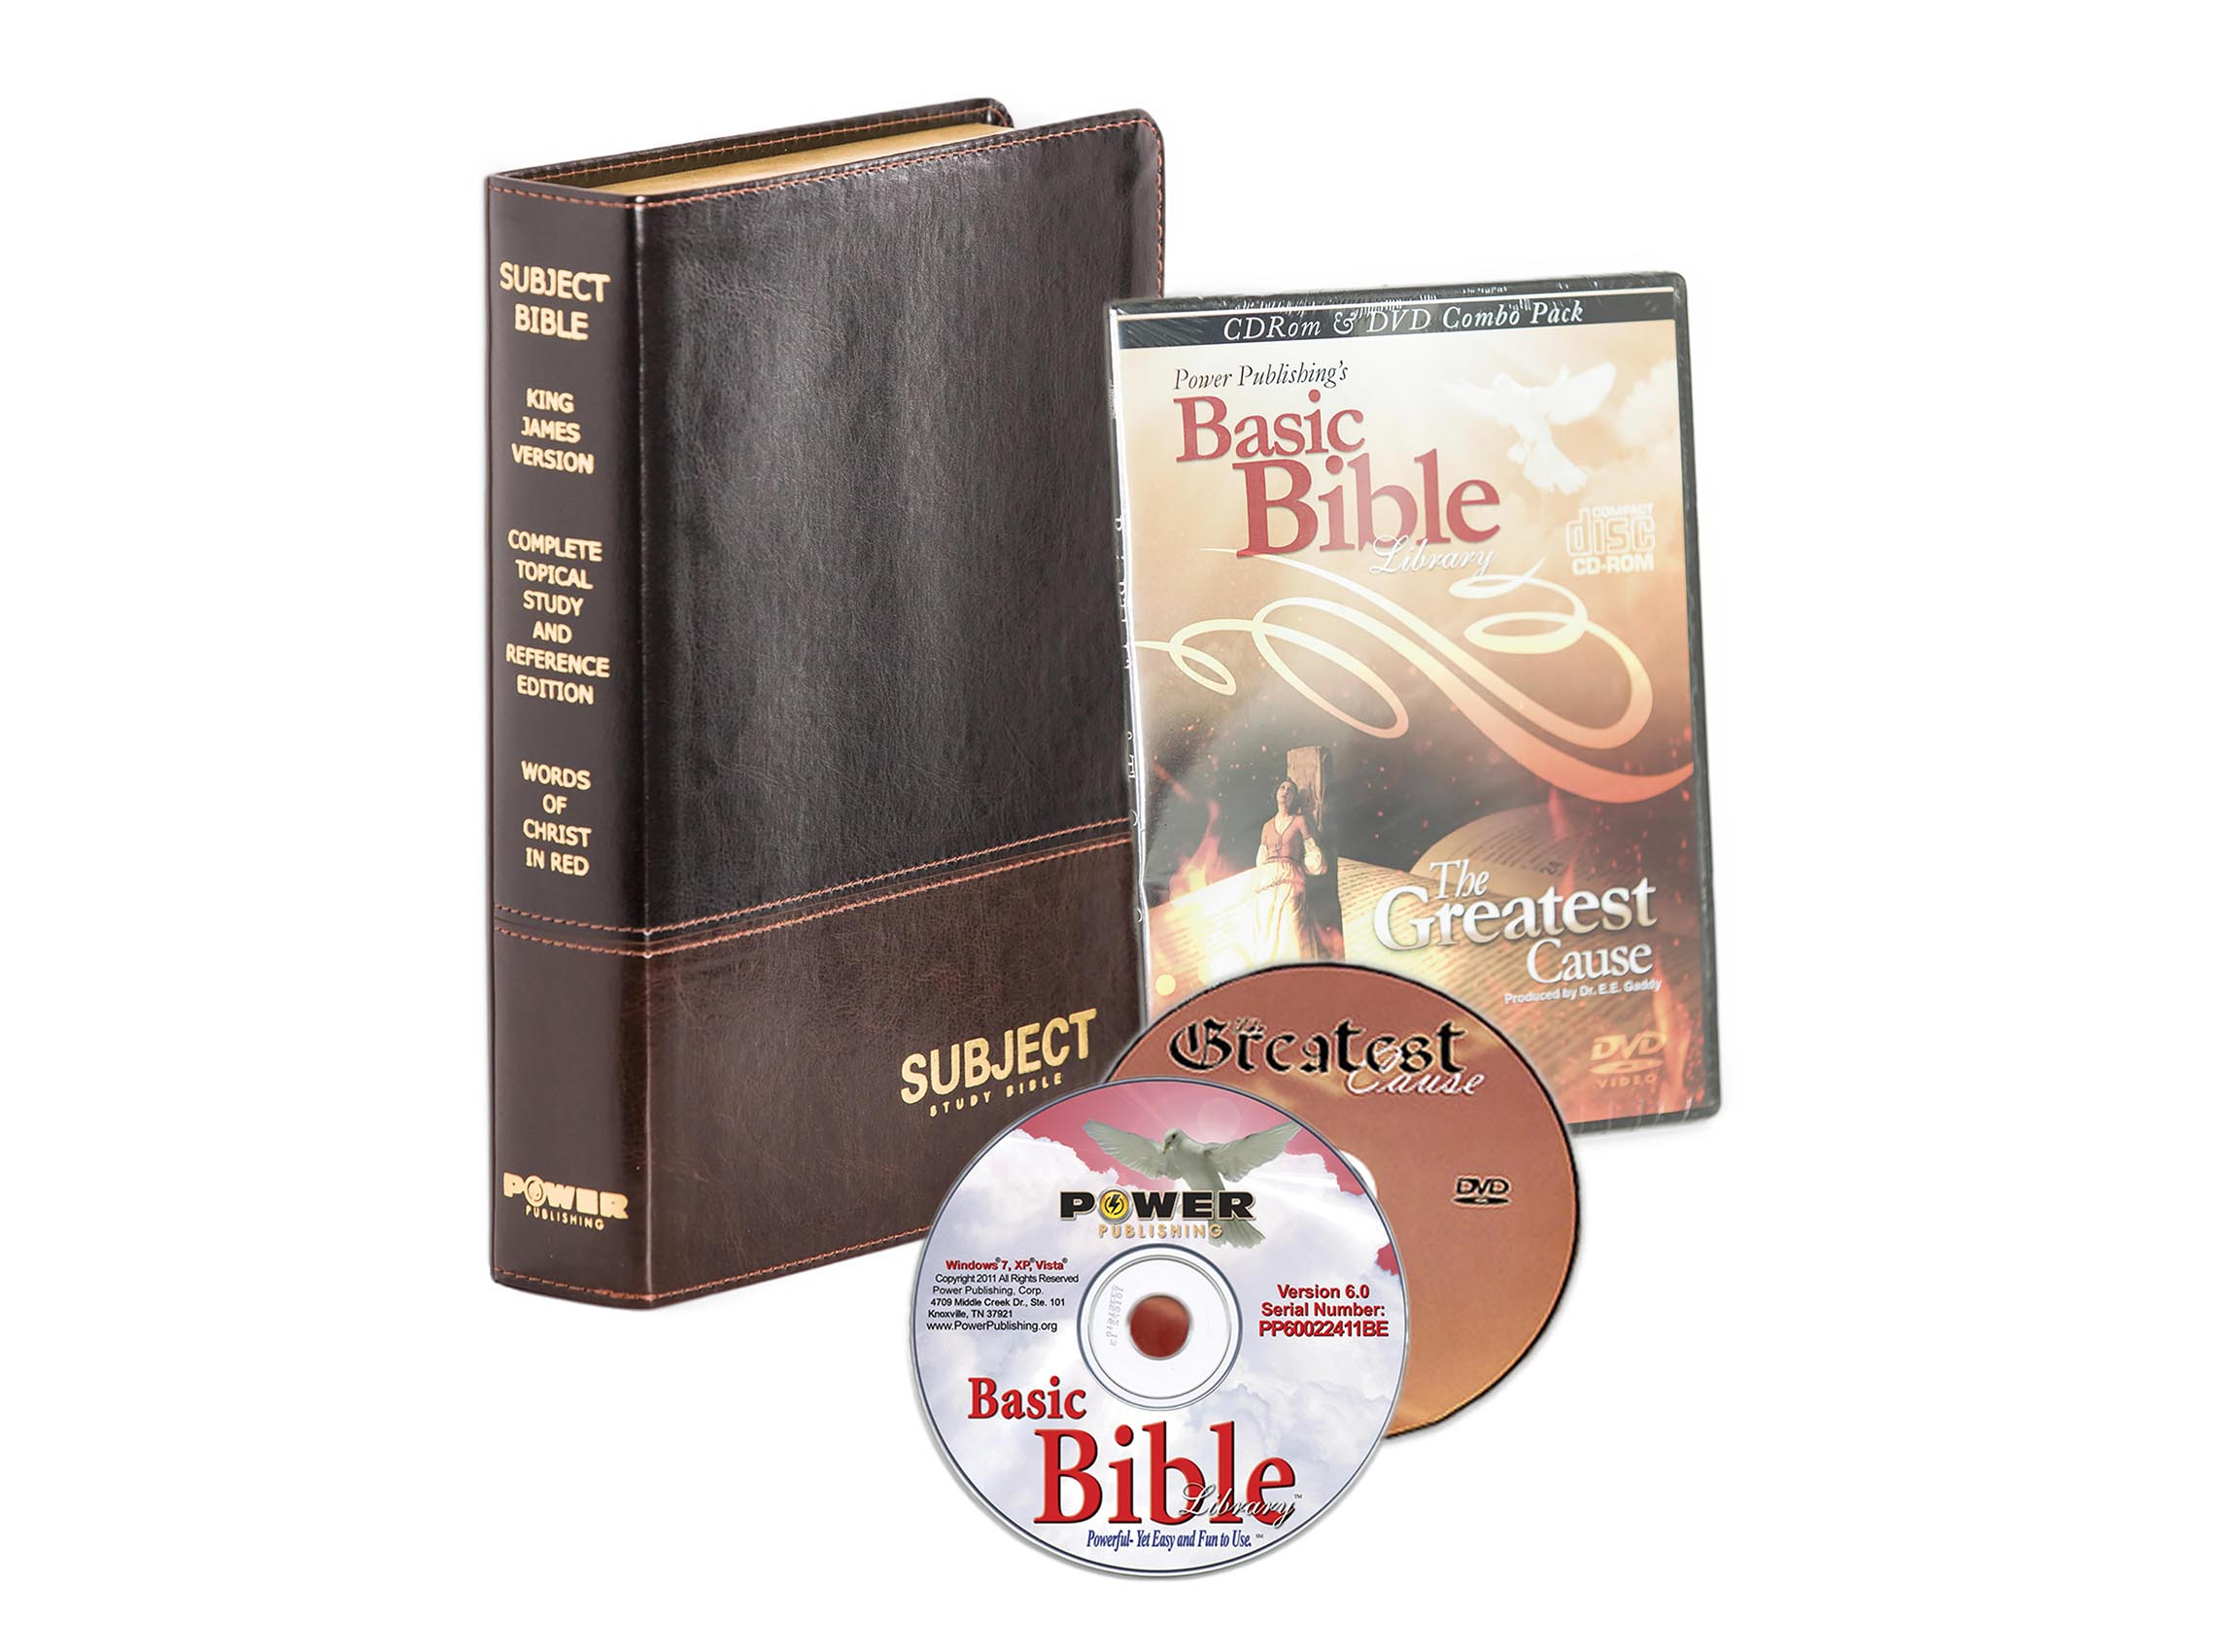 The Famous Subject Bible Study Package (KJV)